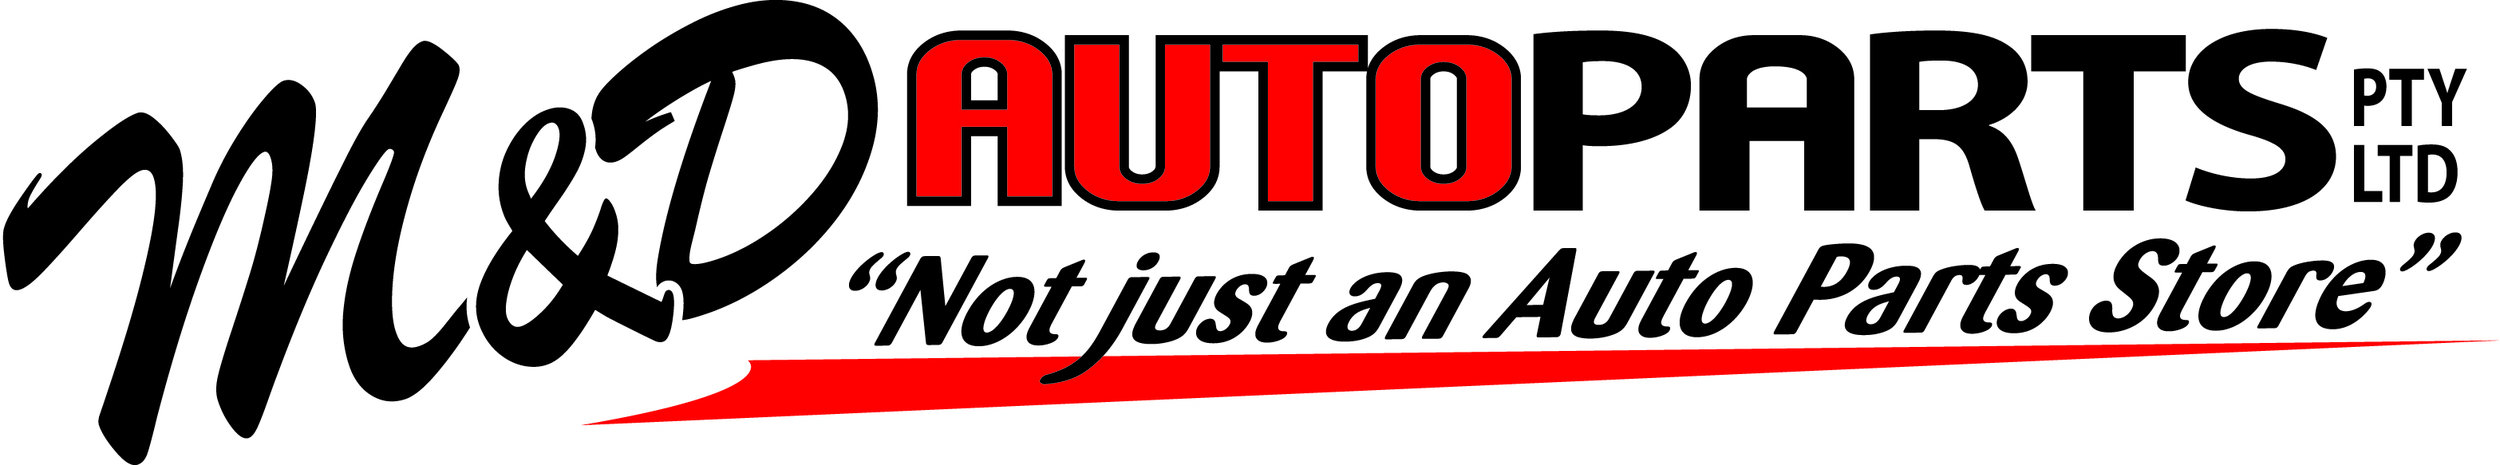 Many thanks to M & D Auto Parts for sponsoring the Primary Section